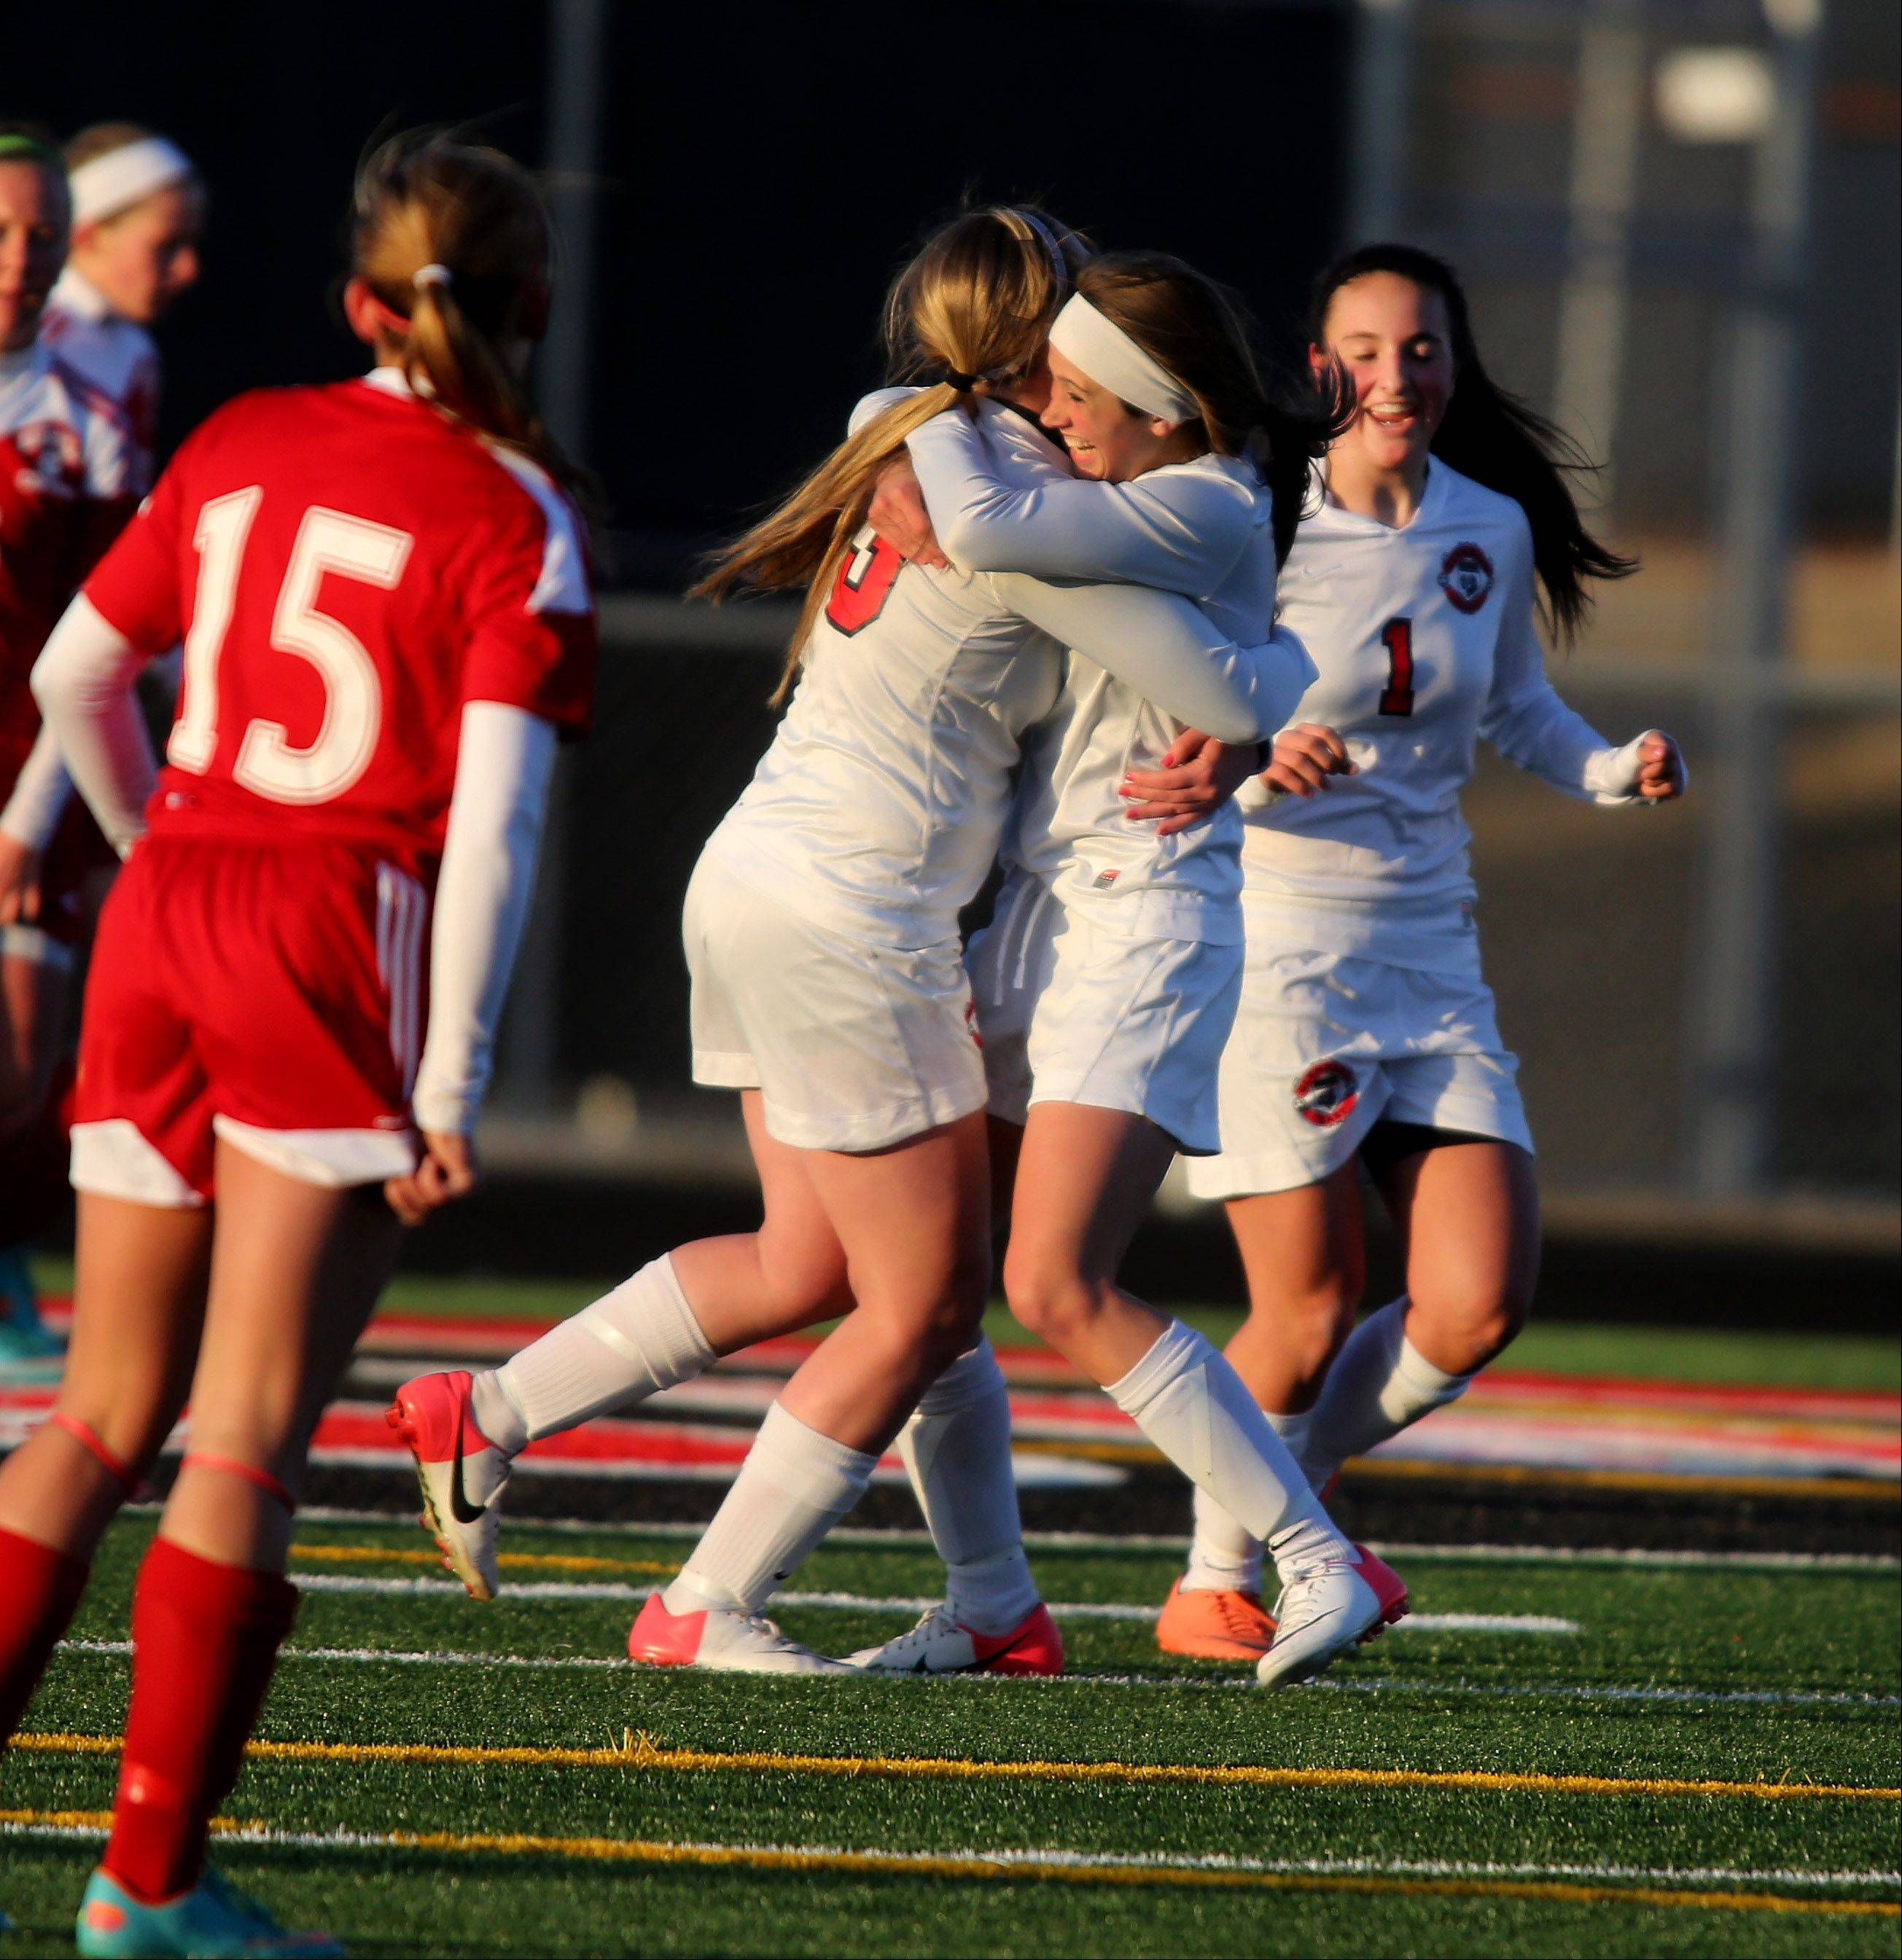 Alex Ruffer of Glenbard East, center, is congratulated by her teammates after making a goal in the first half against Naperville Central during girls soccer on Tuesday in Lombard.